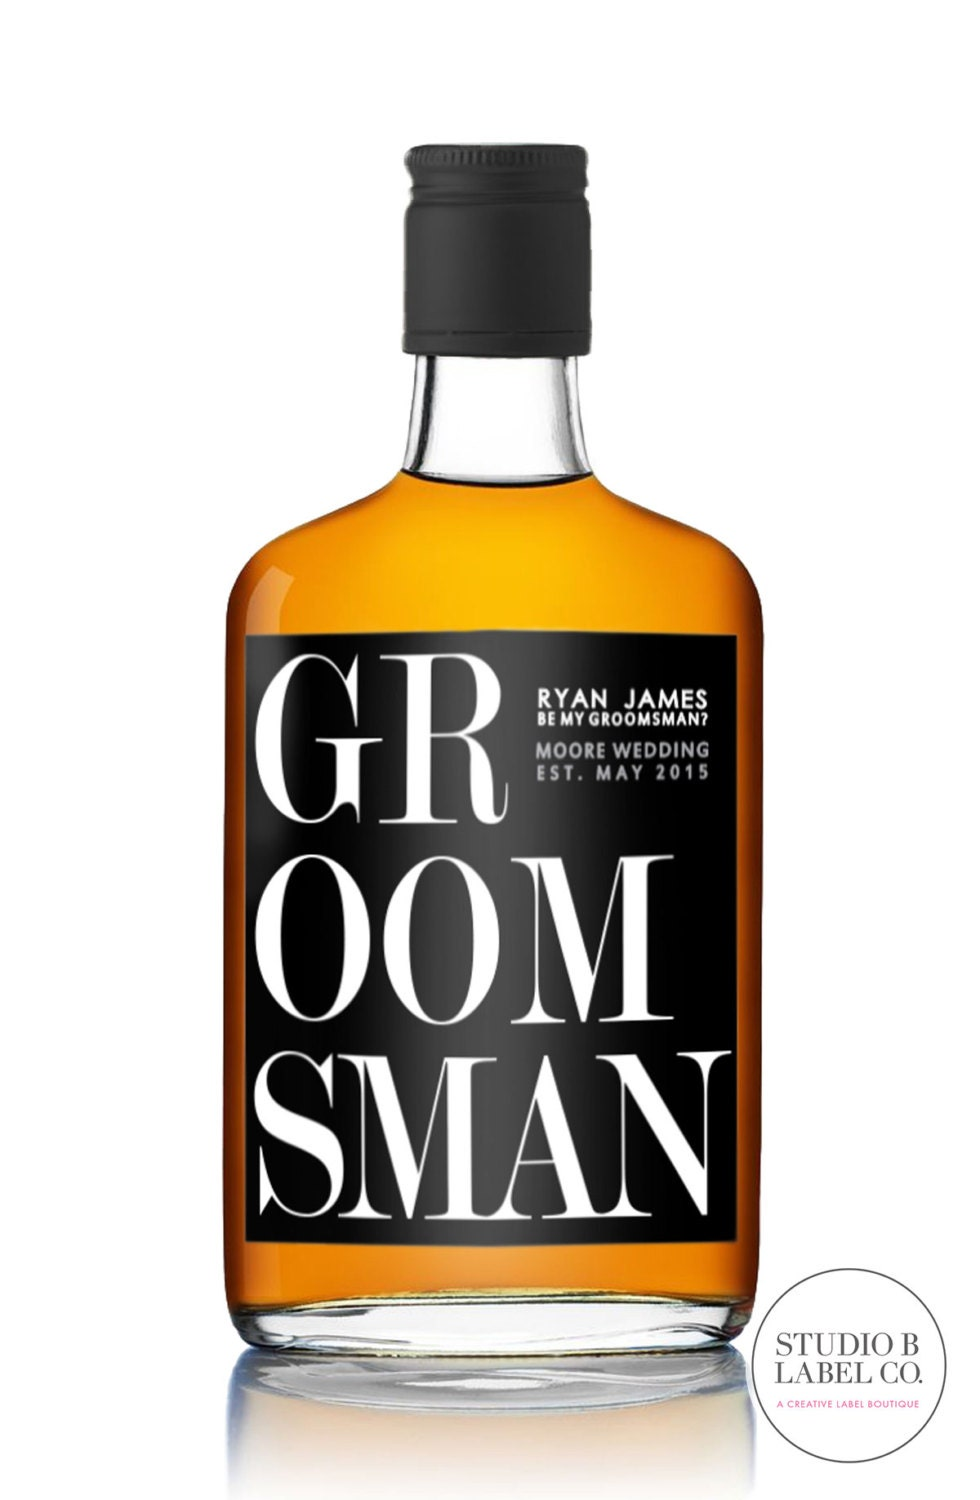 Be my groomsman liquor labels will you be my groomsman label for Groomsman liquor bottle labels